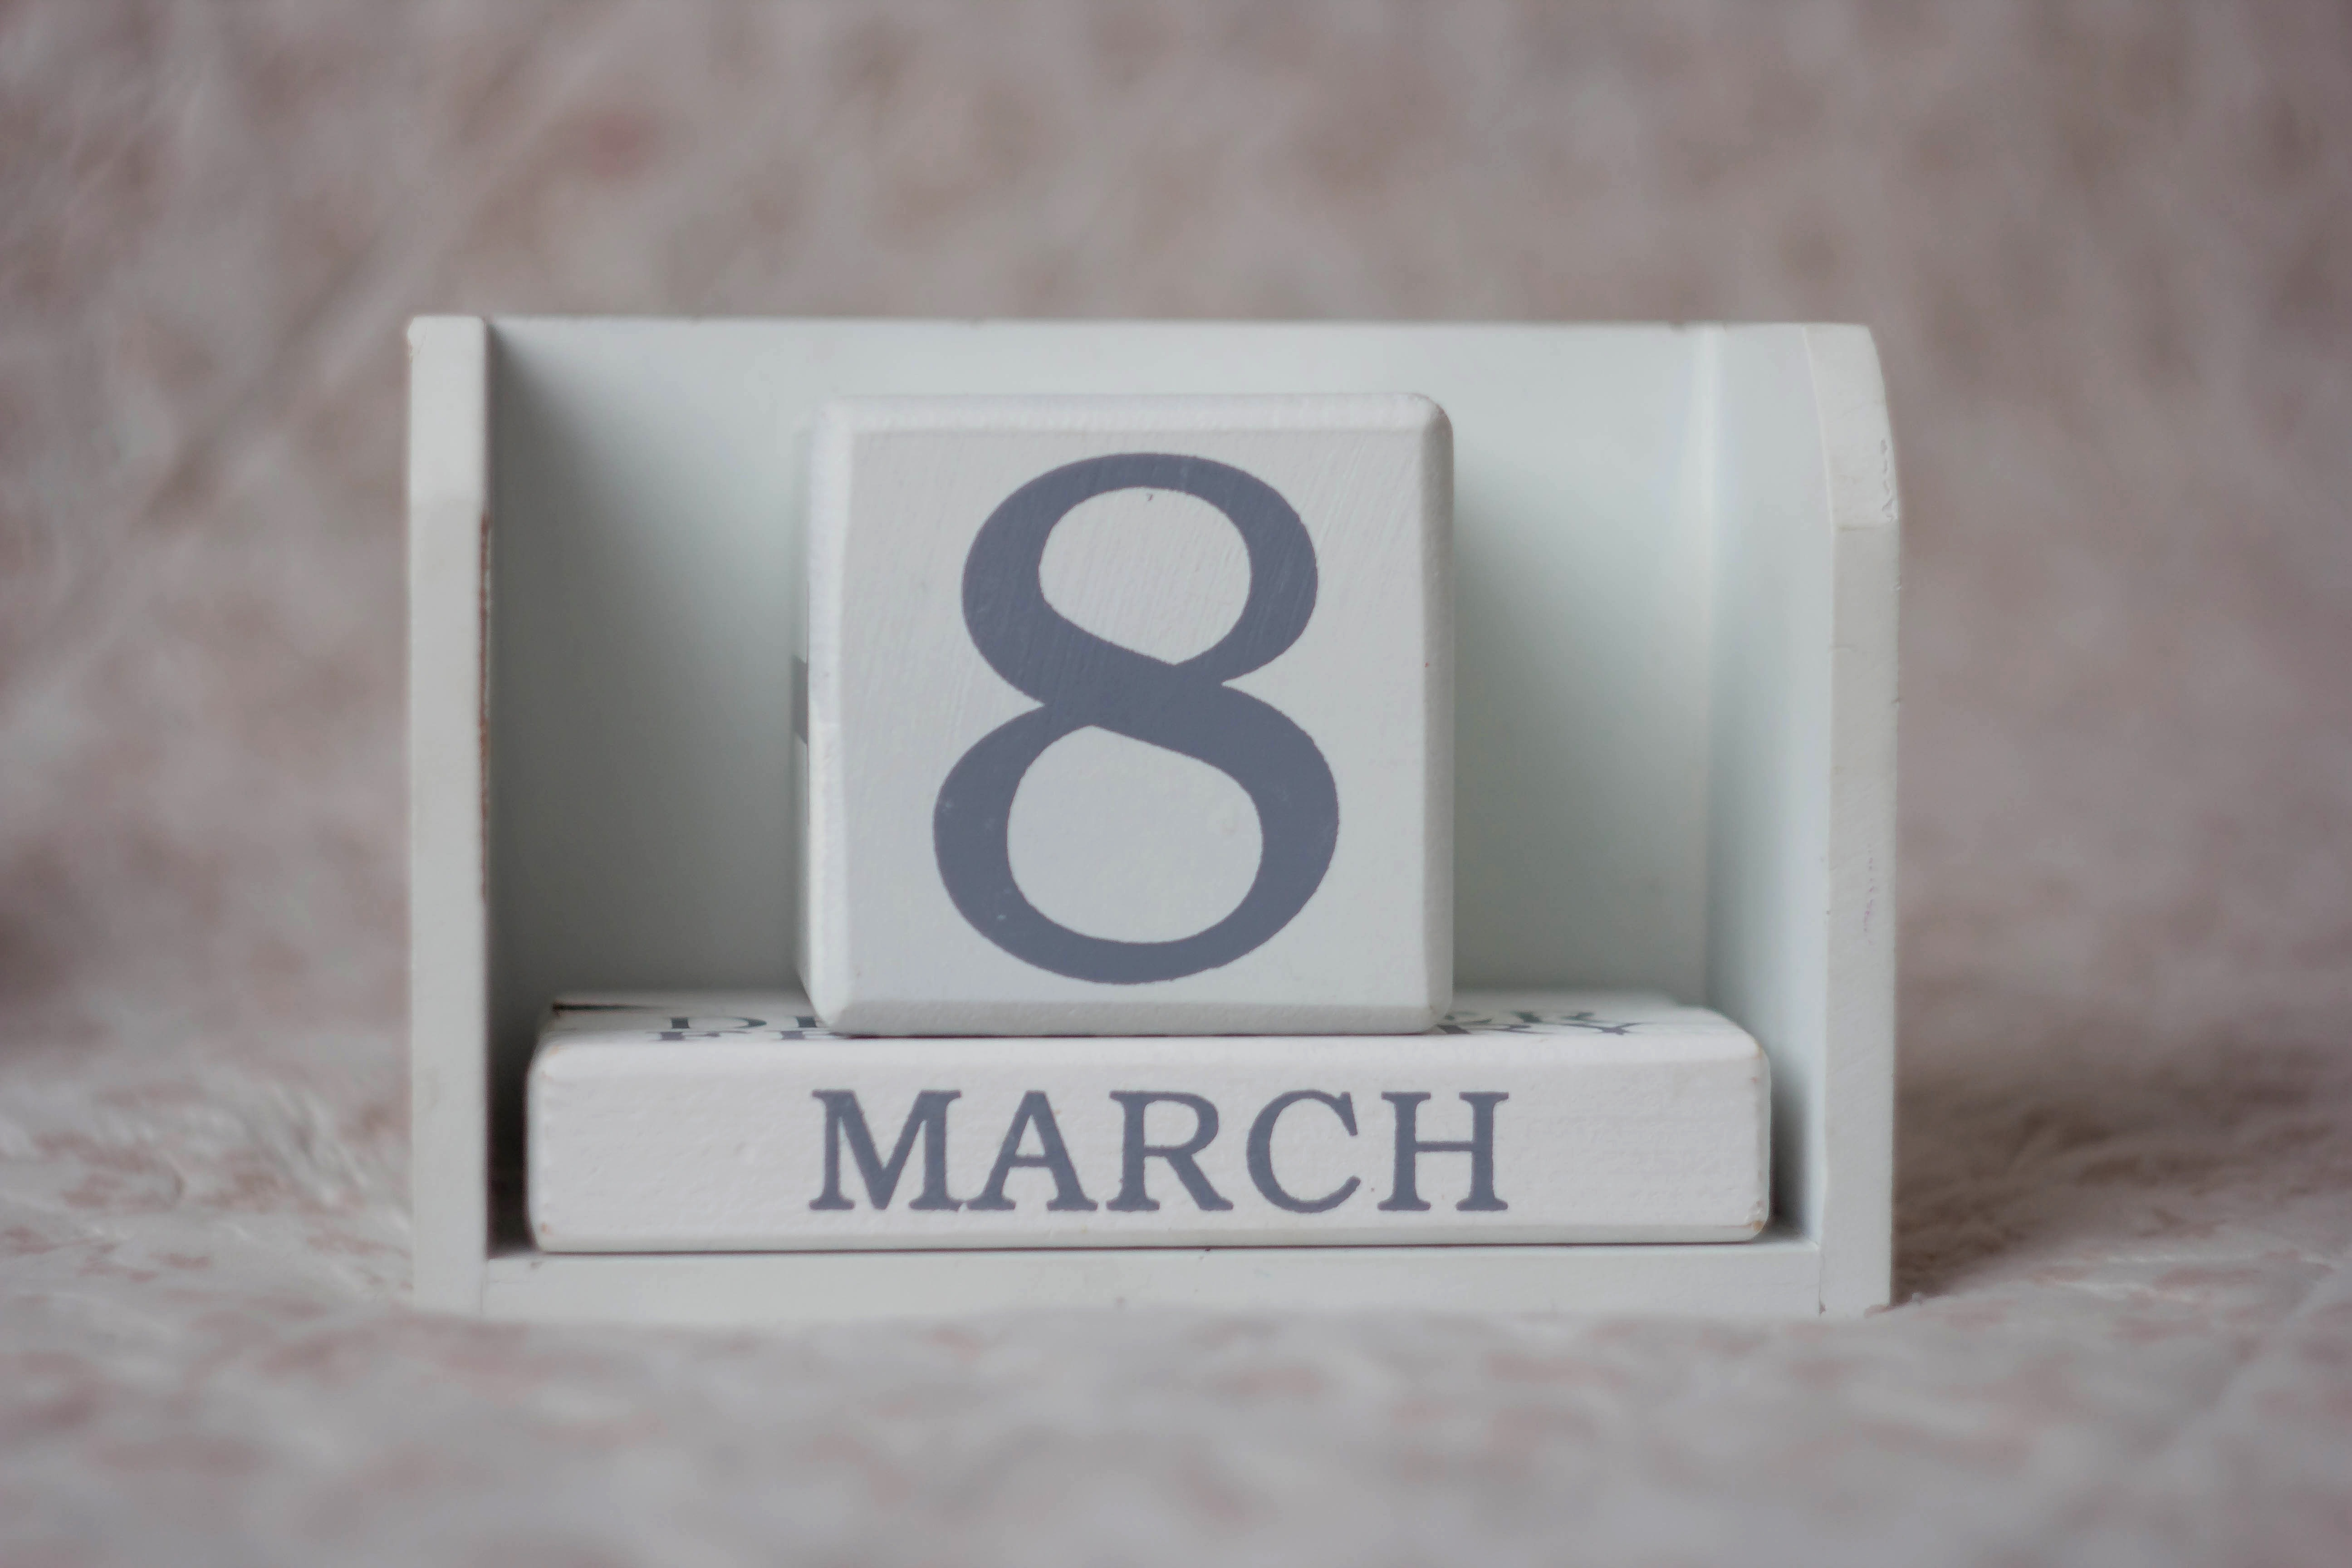 8th of March date calender on a wooden block